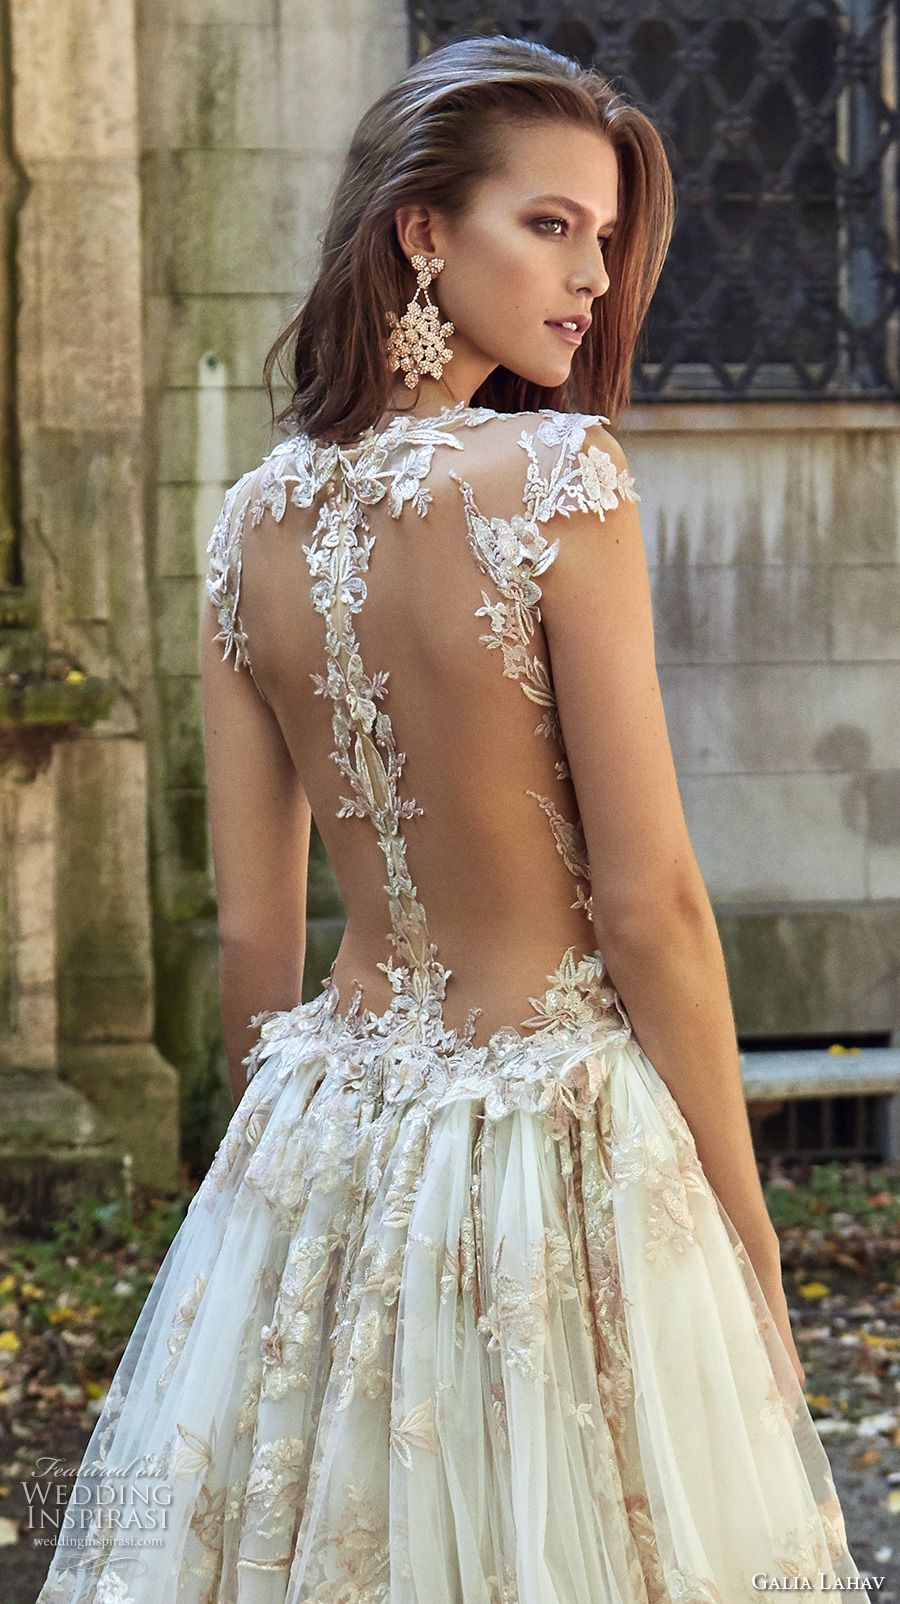 f0c706c426e galia lahav fall 2017 bridal sleeveless deep plunging v neck full  embellishment sexy princess ball gown a line wedding dress overskirt  illusion low back ...